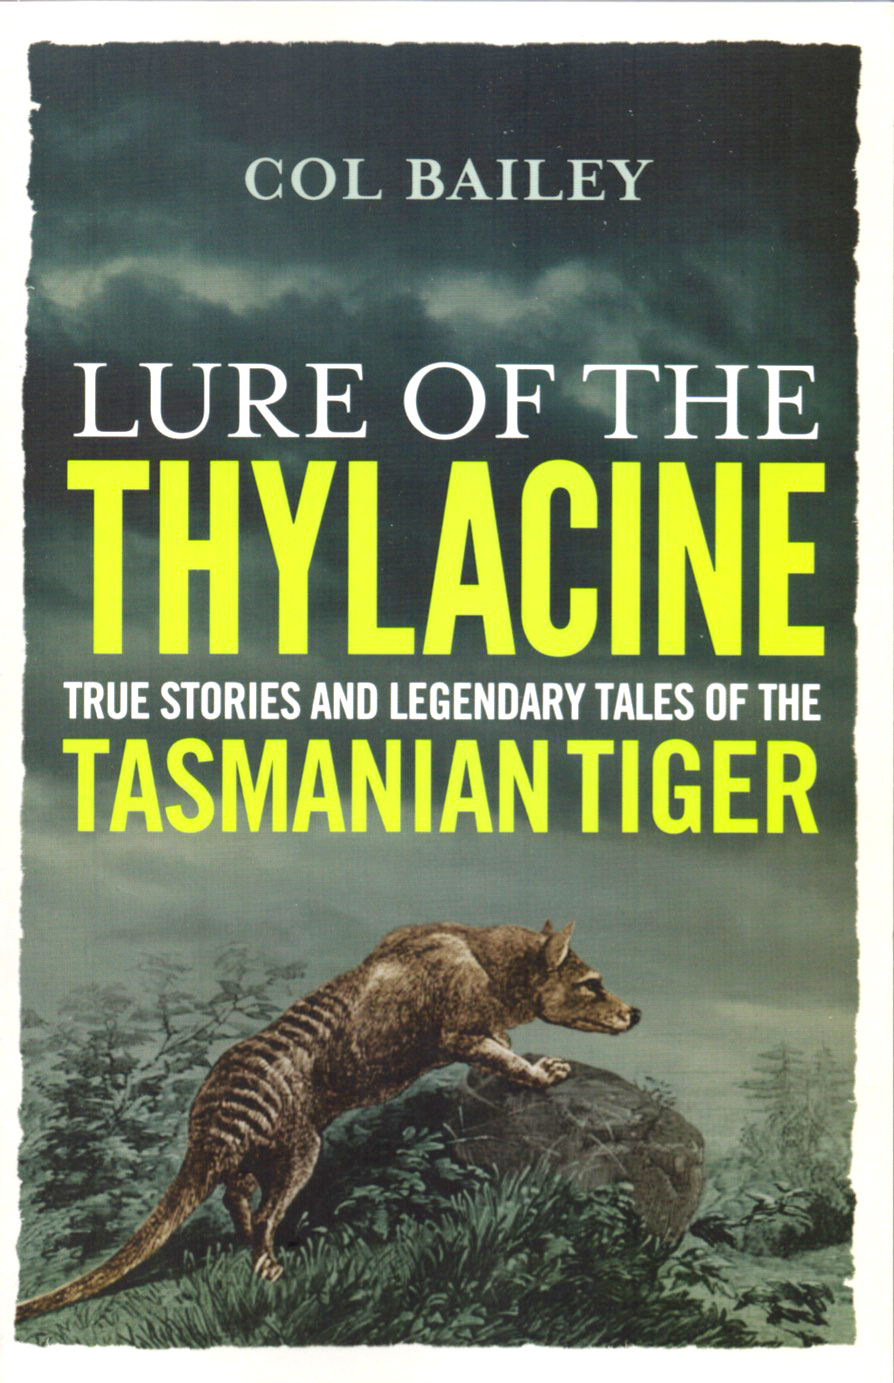 Lure of the Thylacine